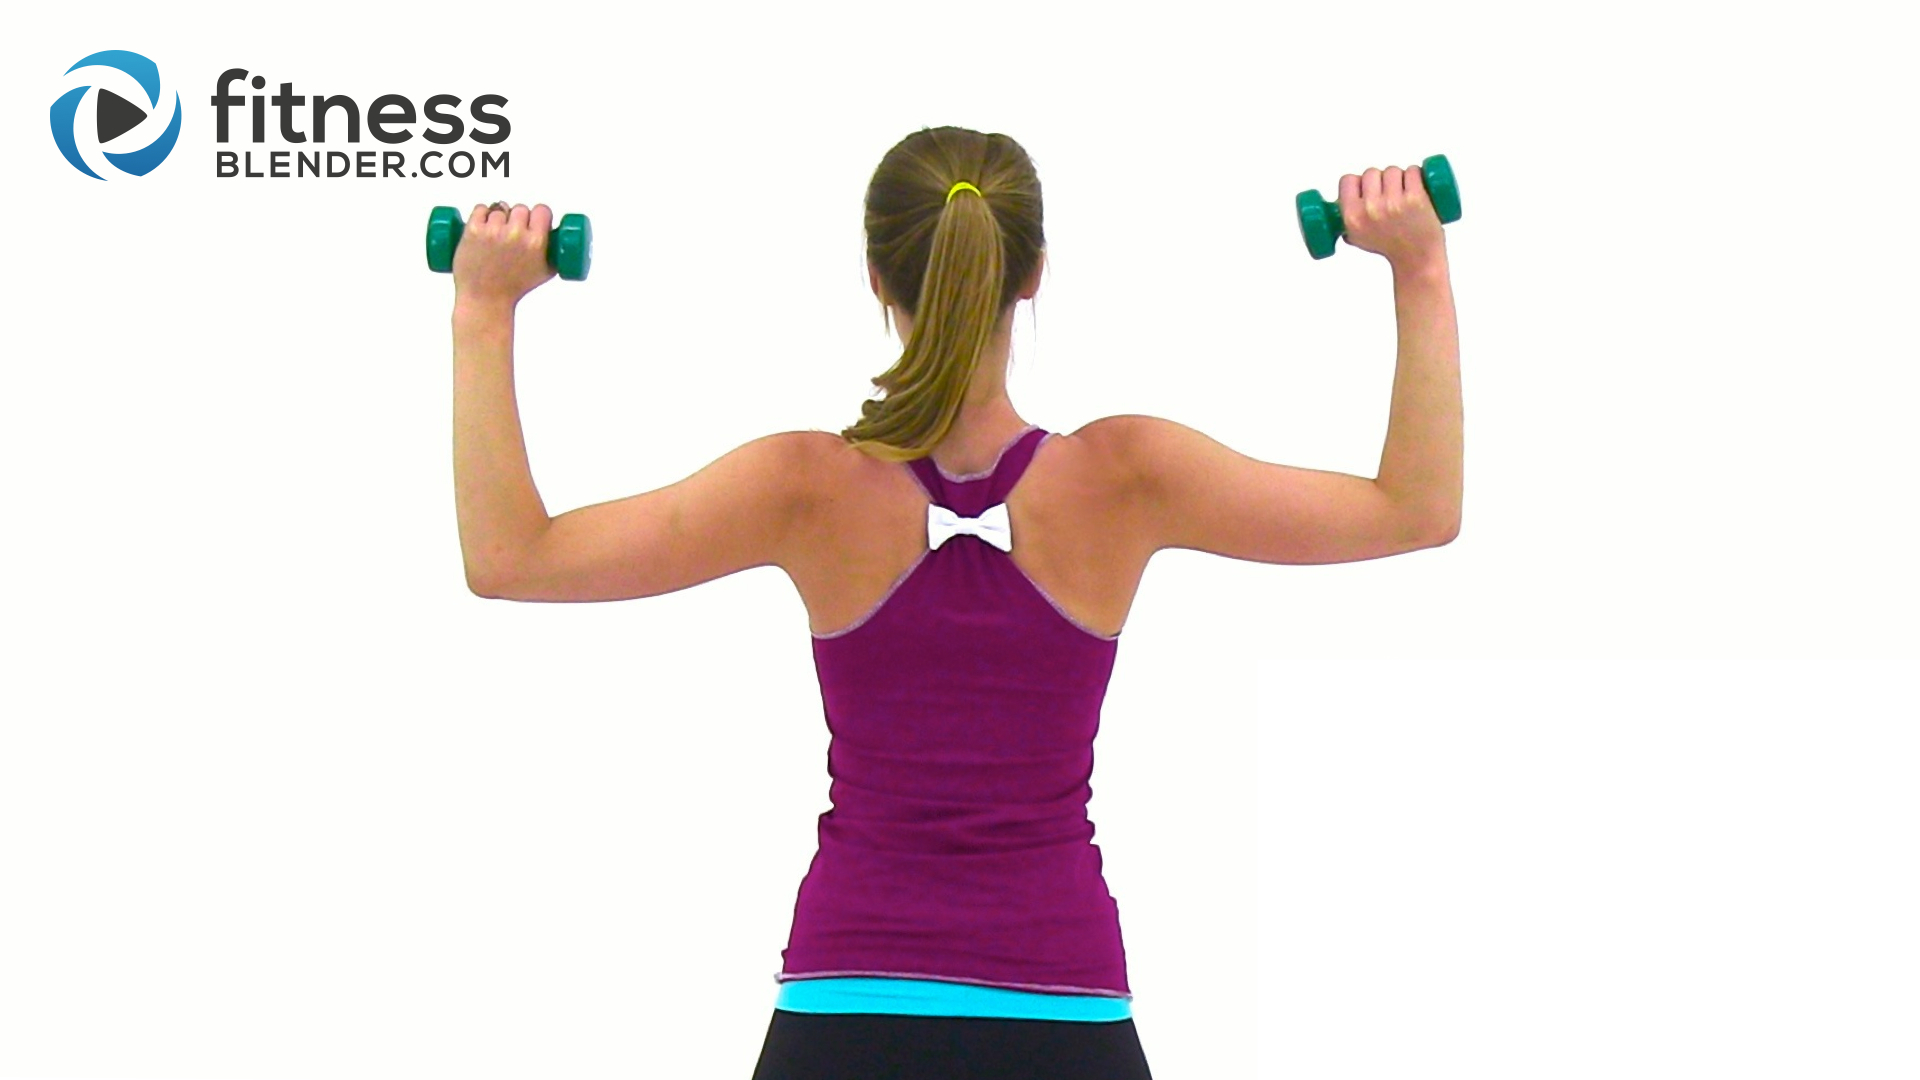 Tank Top Arms Workout - Arms, Chest, Back and Shoulders ...